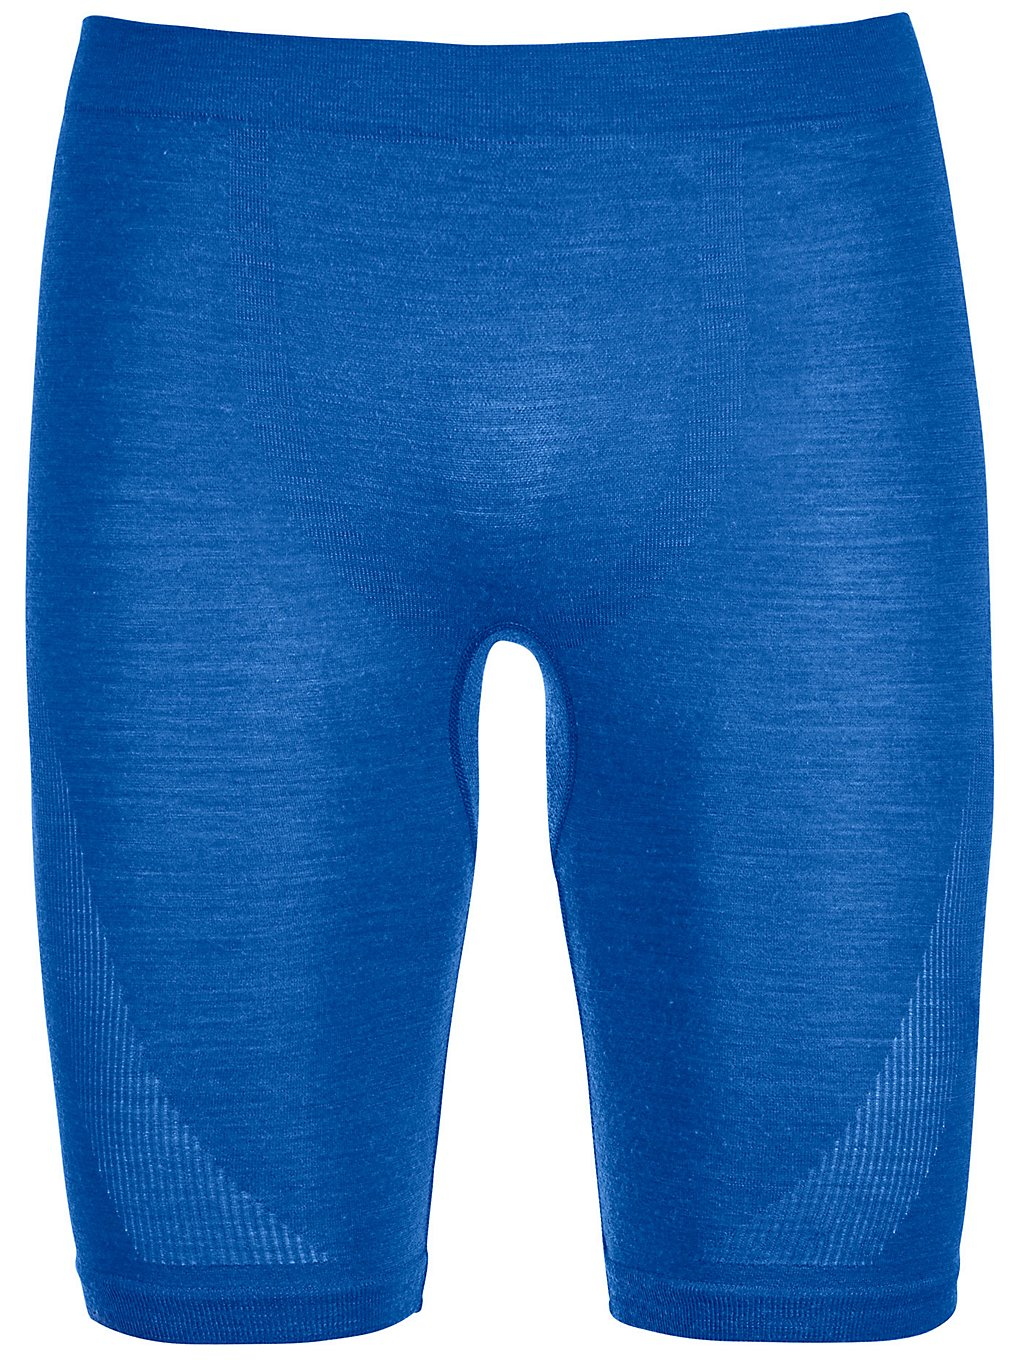 Ortovox 120 Comp Light Short Base Layer Bottom blauw